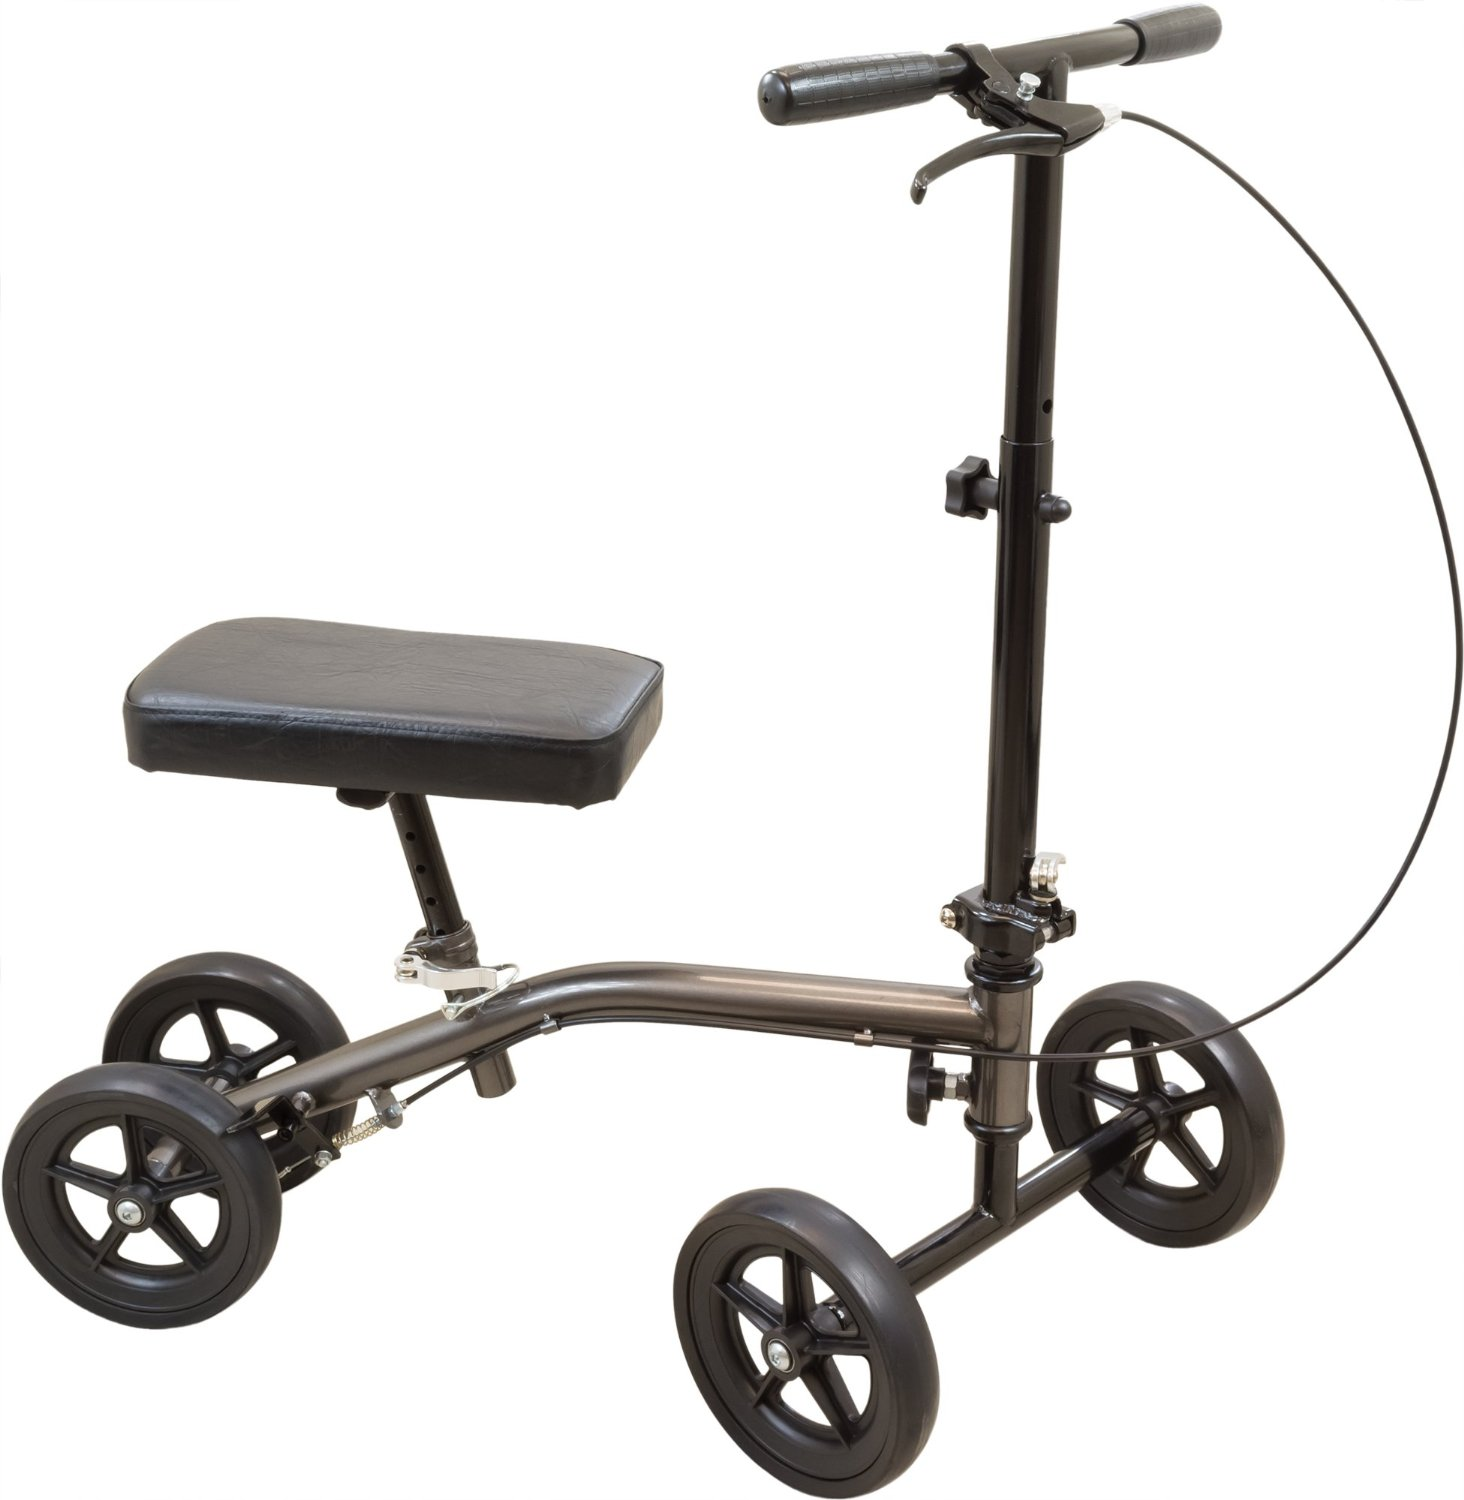 Best Knee Stroller 10 Best Knee Scooters Apr 2019 Reviews Buying Guide